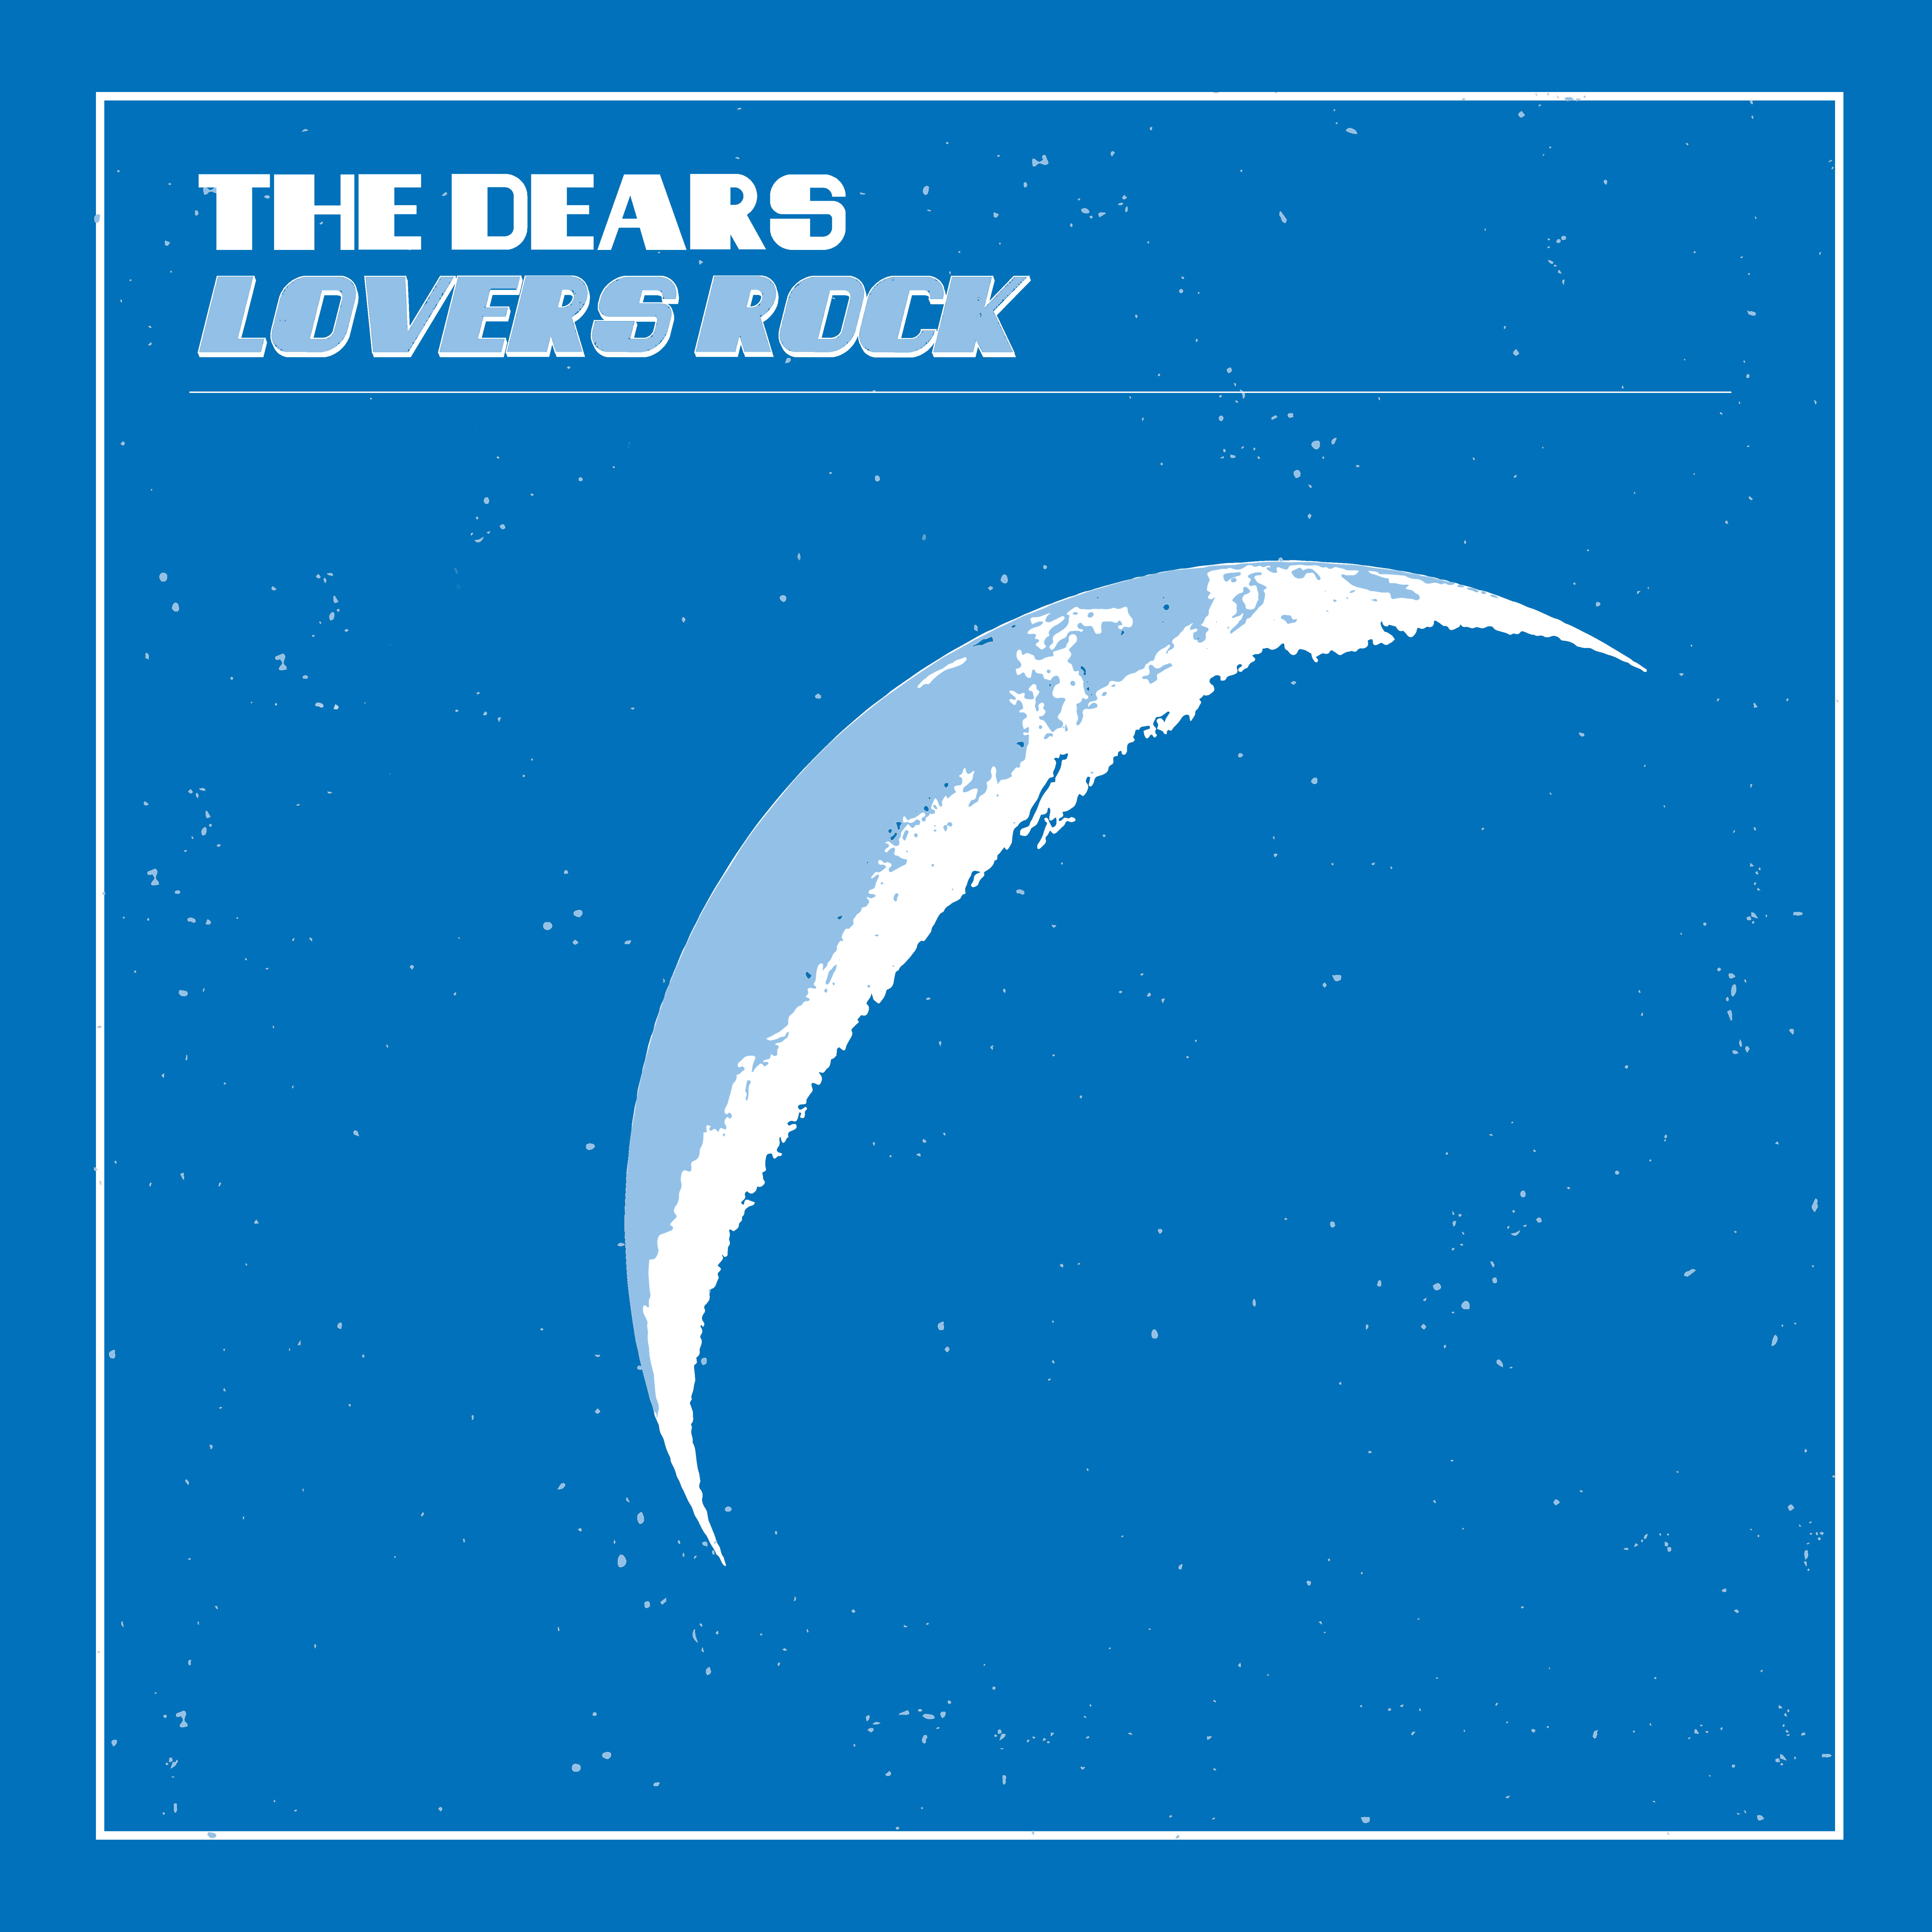 The Dears - Lovers Rock - CD + Shirt + Poster Bundle